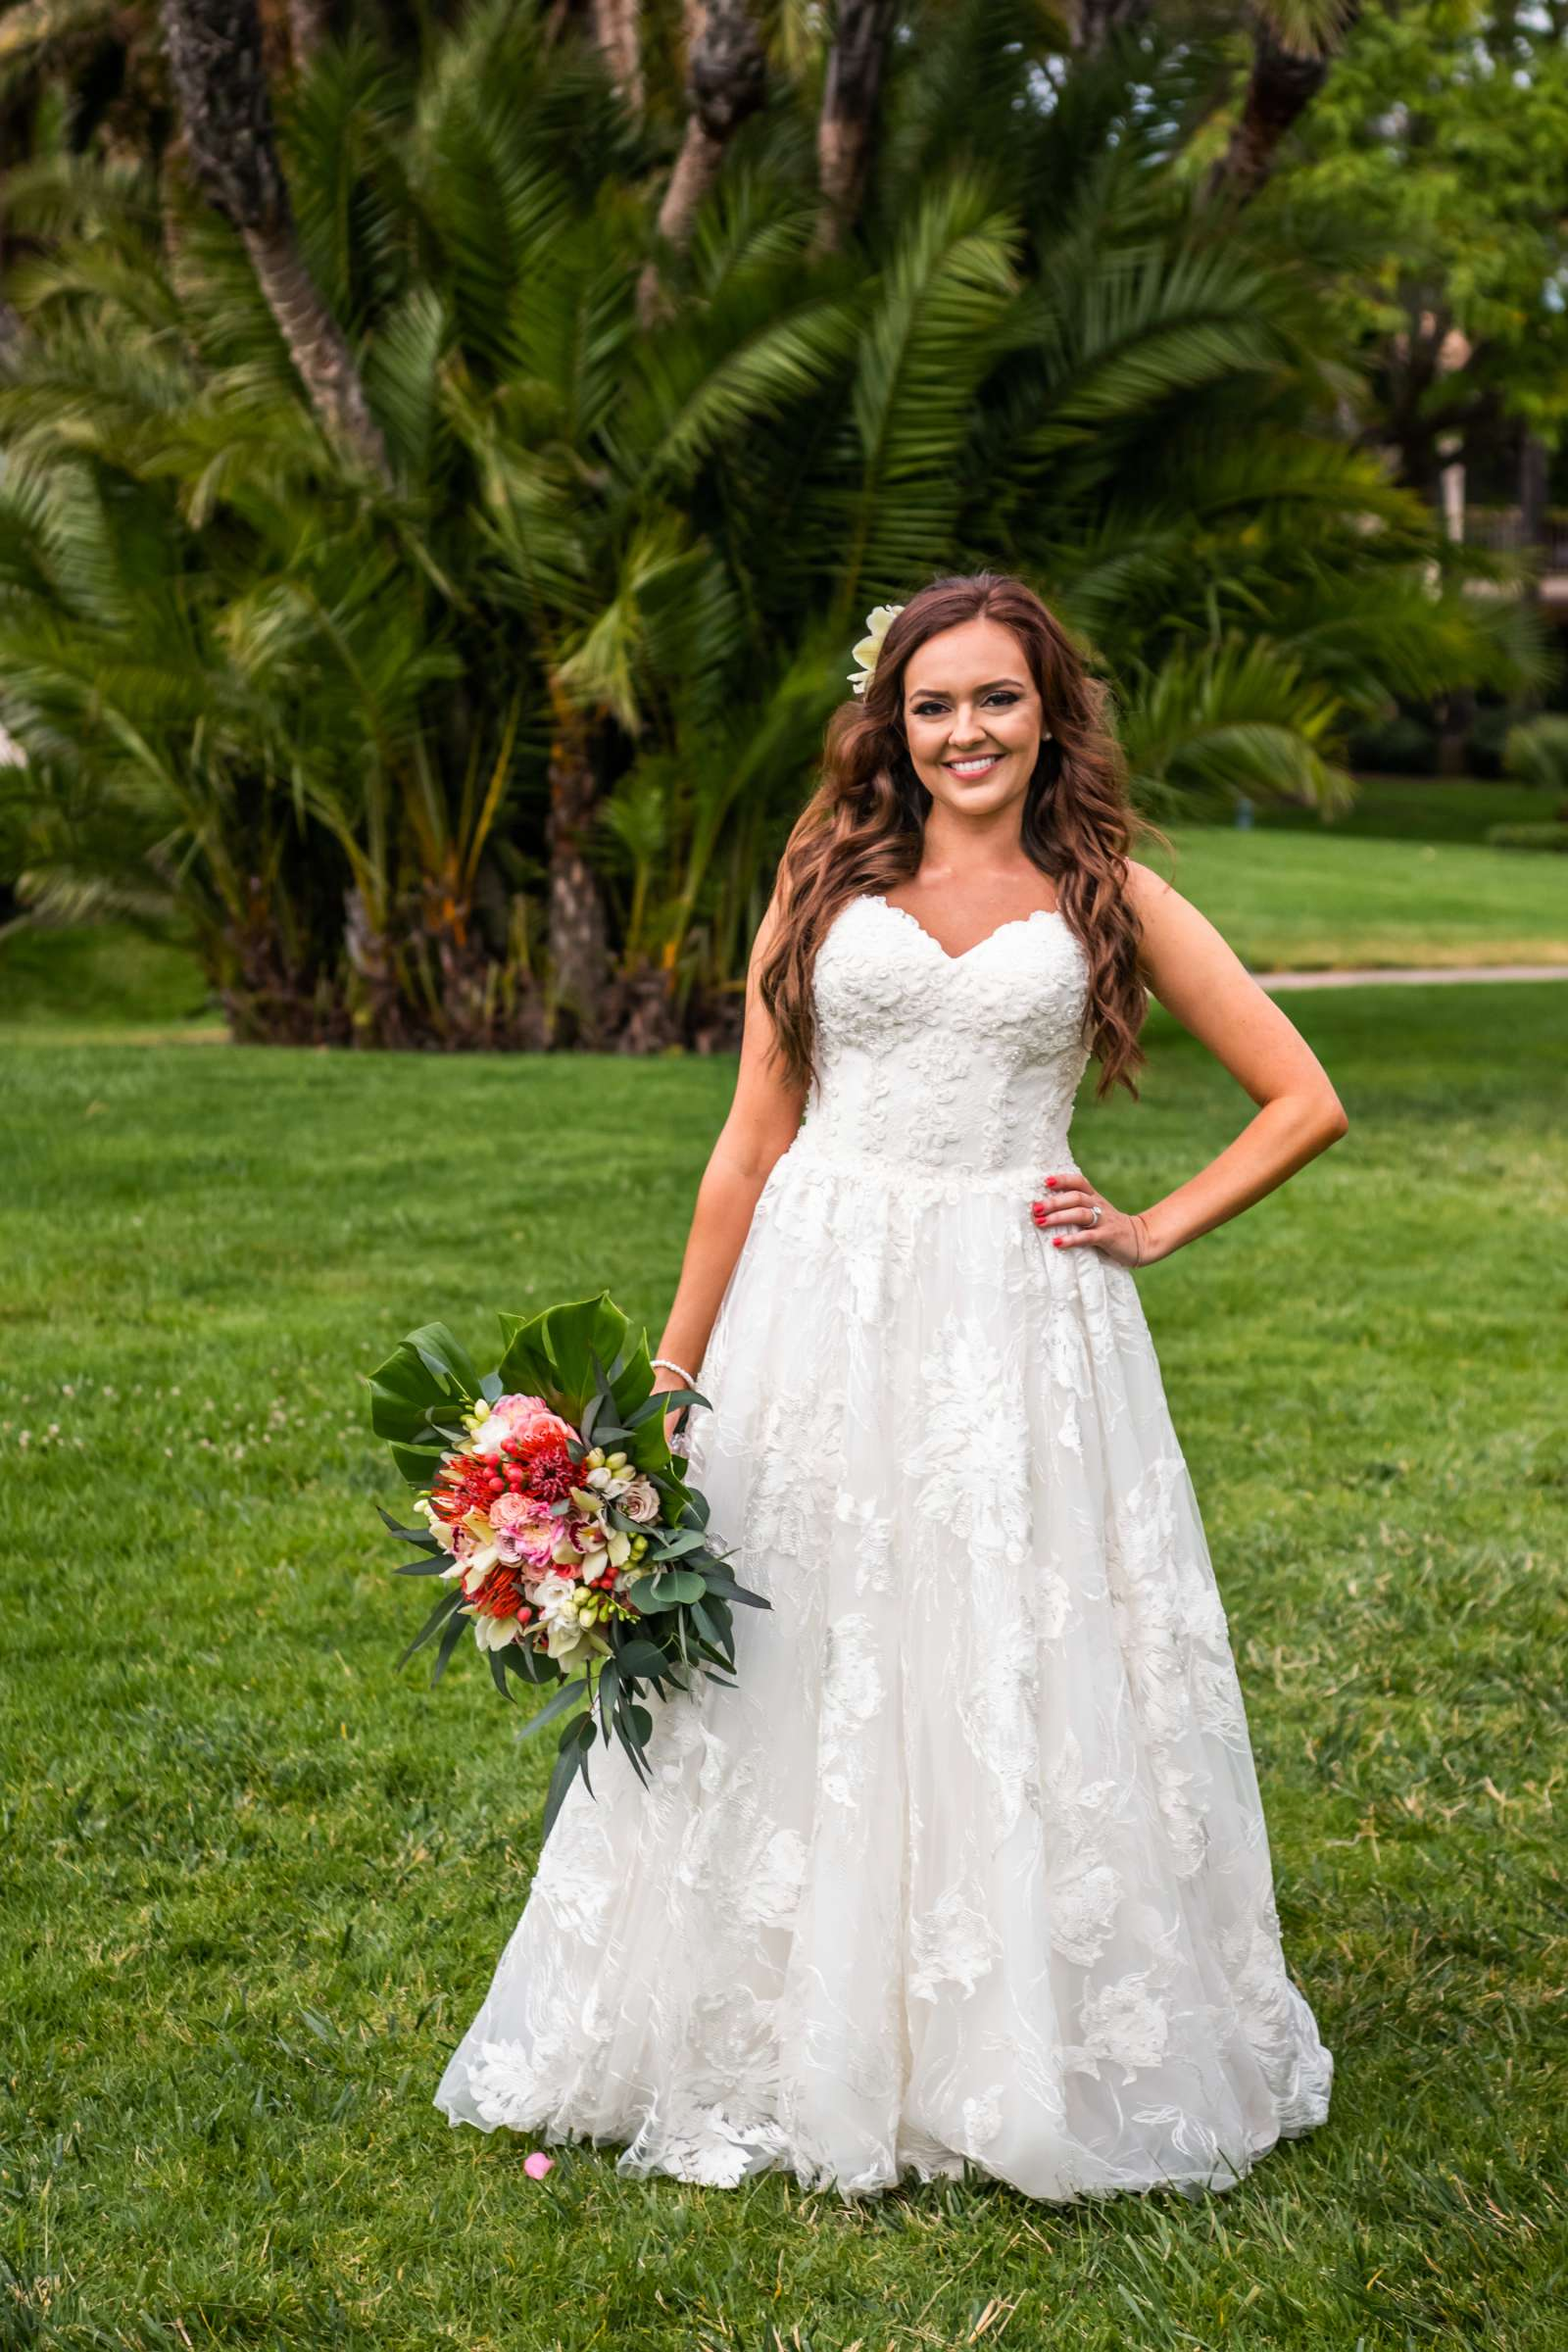 San Diego Mission Bay Resort Wedding coordinated by Cafe Au Love, Lauren and Adam Wedding Photo #100 by True Photography